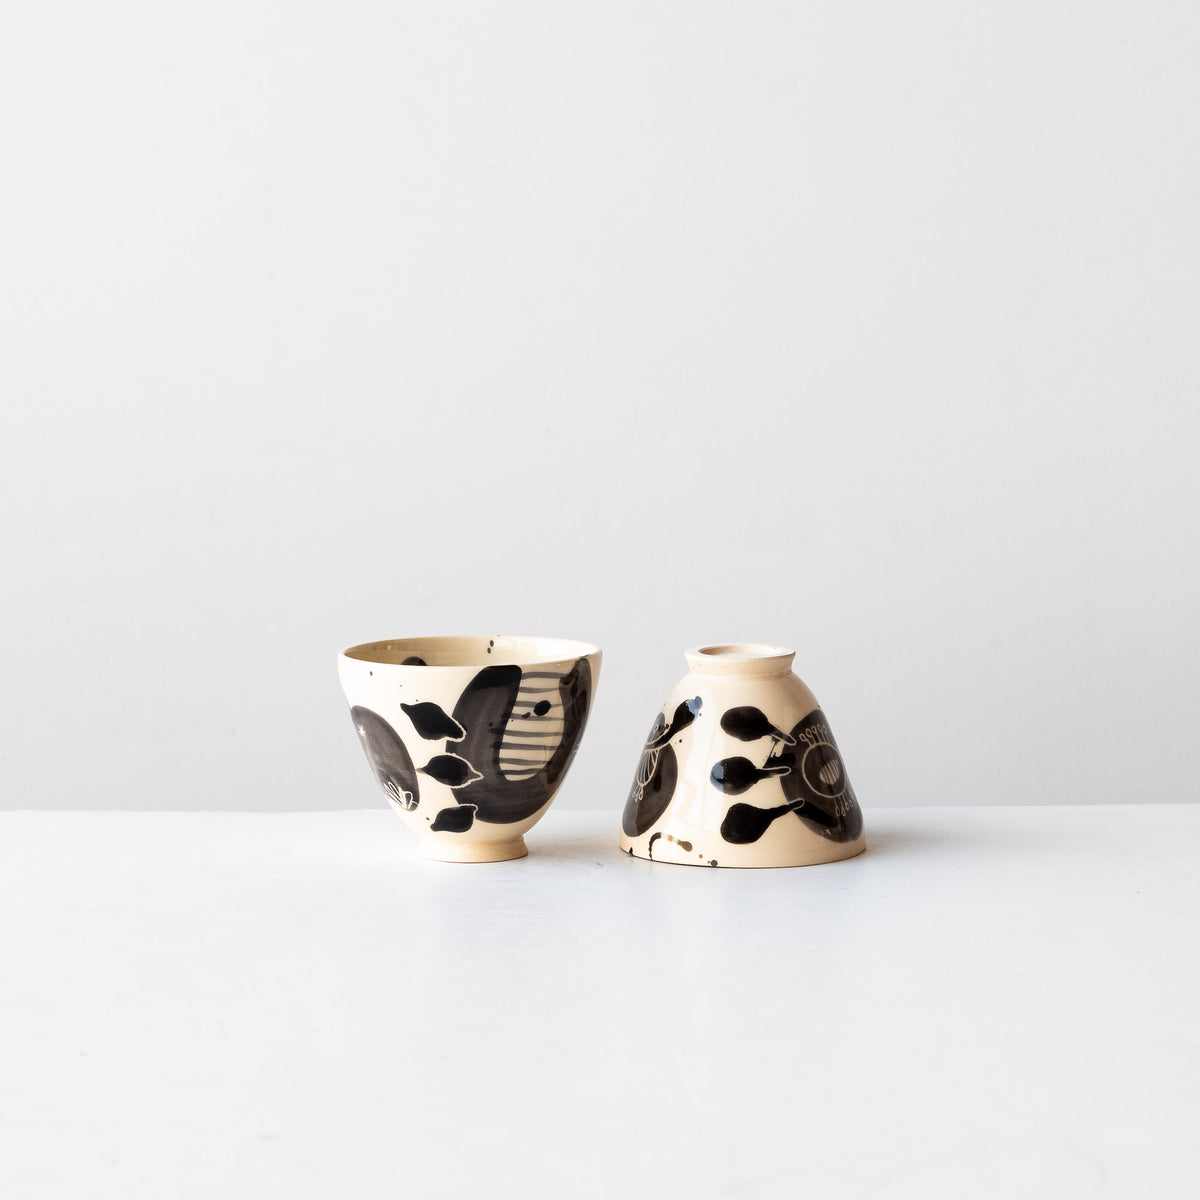 Two Black Lil' Hand Painted Earthenware Bowls - Sold by Chic & Basta